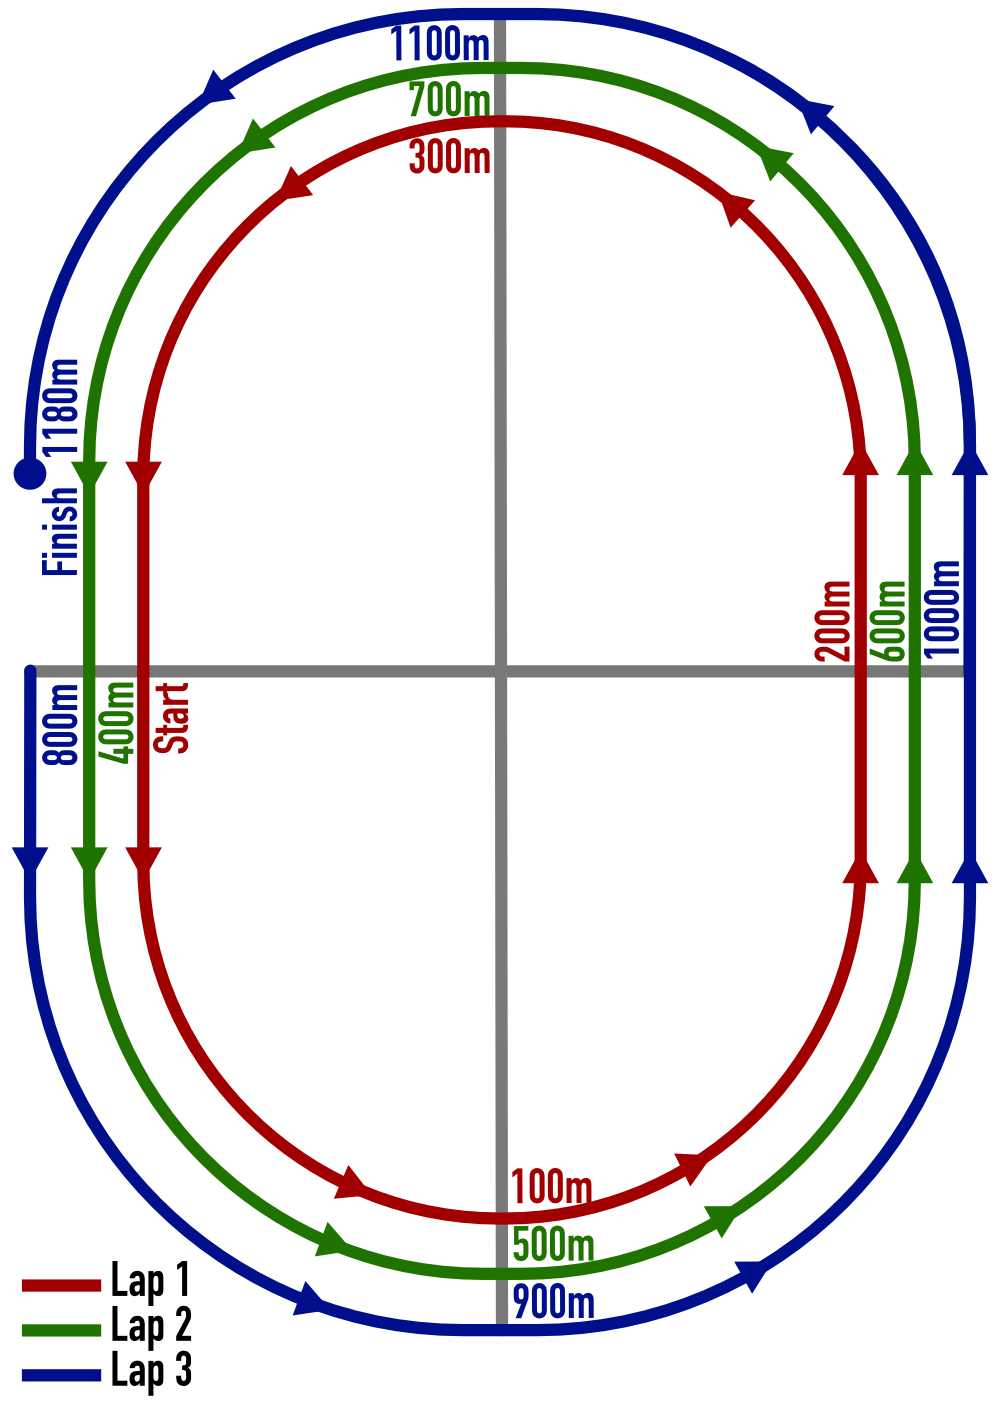 Diagram of a 400 meter track with the positions listed above marked on it.  100 meters is at each quarter, 400 meters each lap, 1080 meters after 2 and 7/10th laps